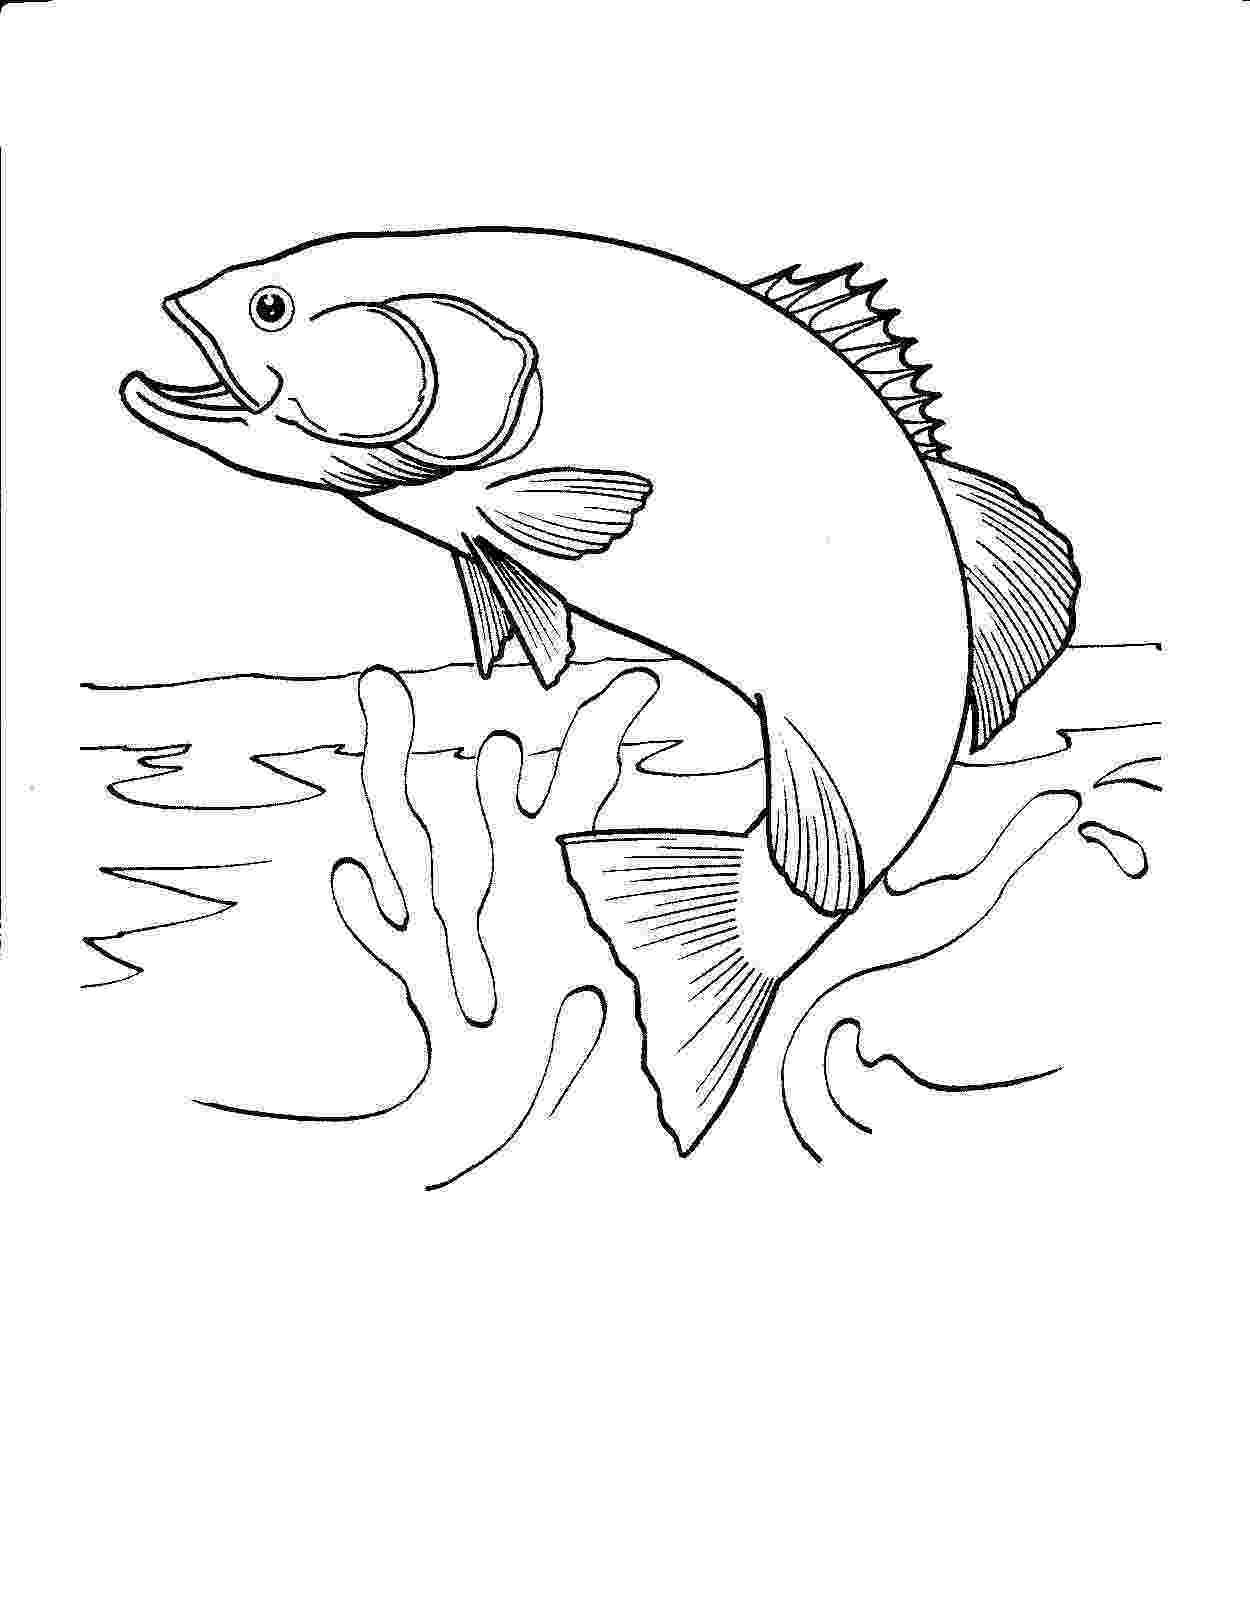 fish coloring pages to print fish coloring pages team colors to coloring fish print pages